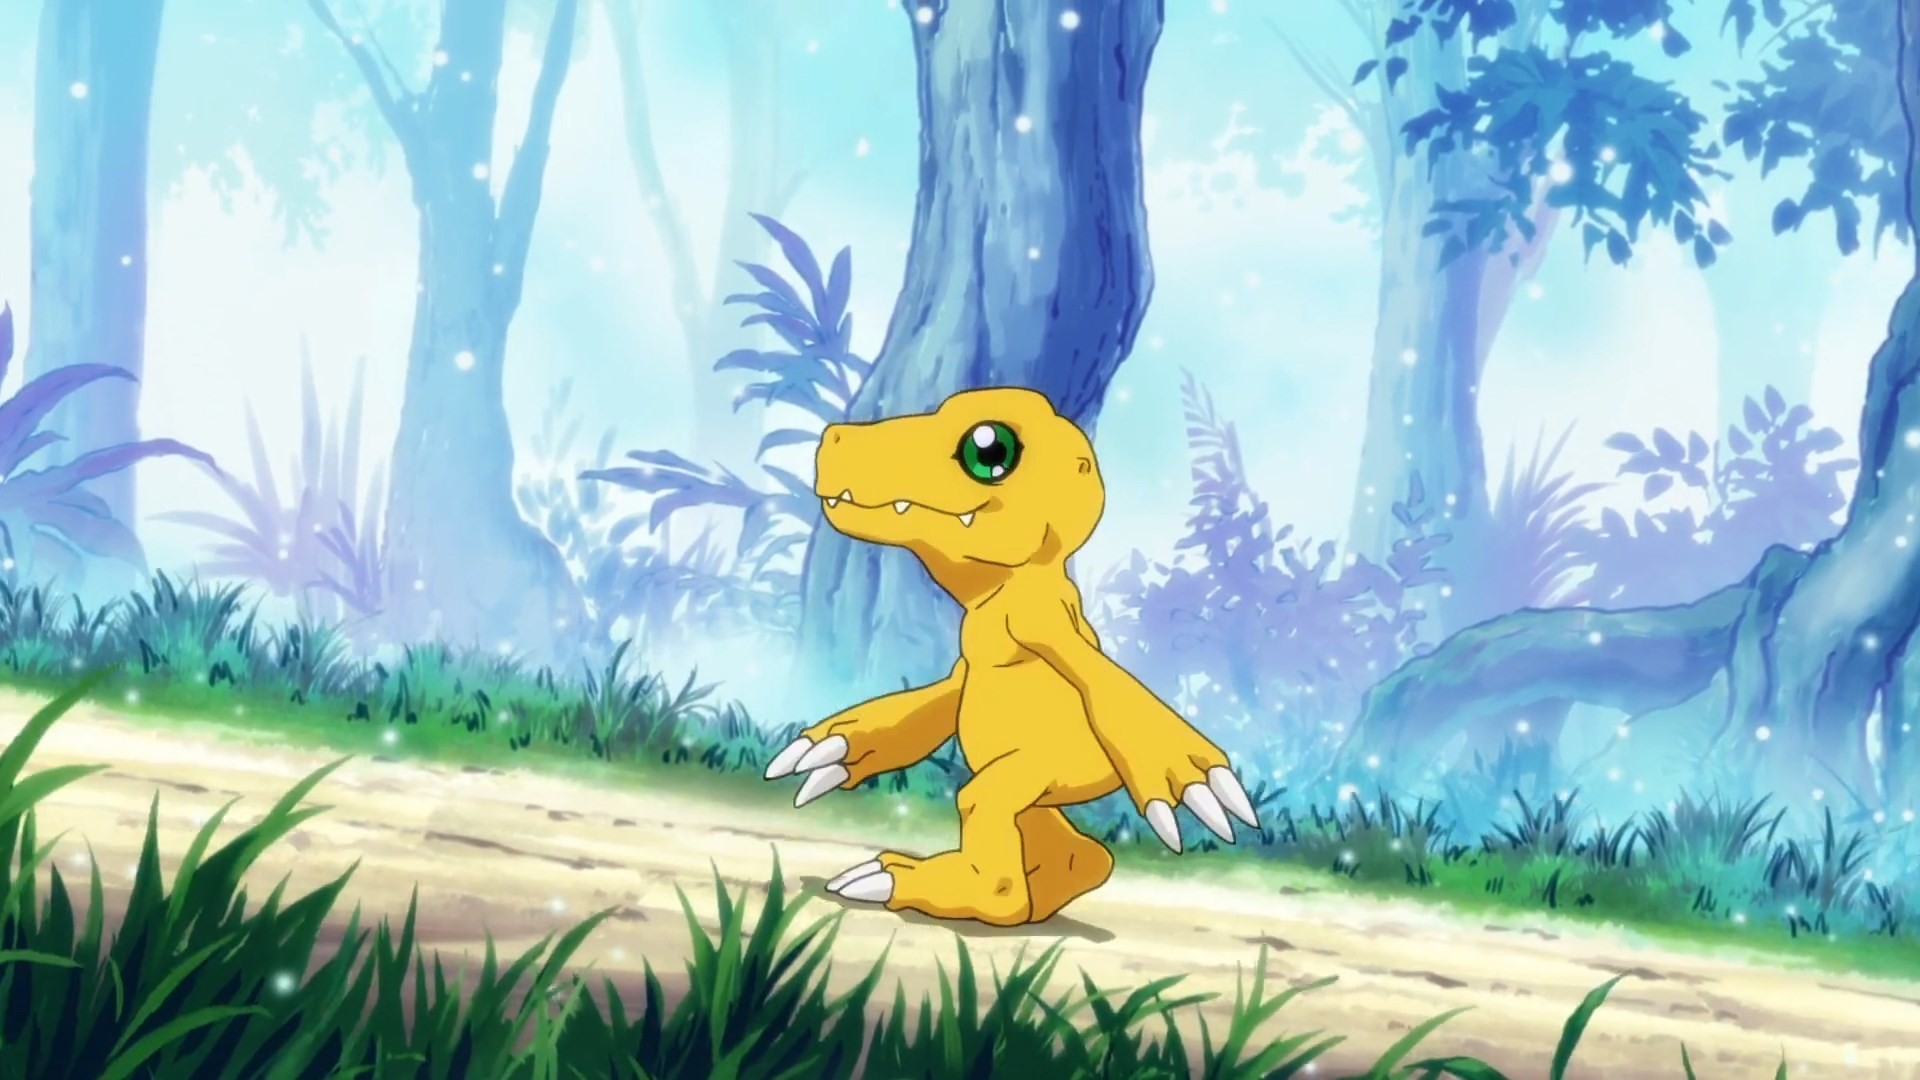 Res: 1920x1080, Agumon cameos on the newest Digimon Series